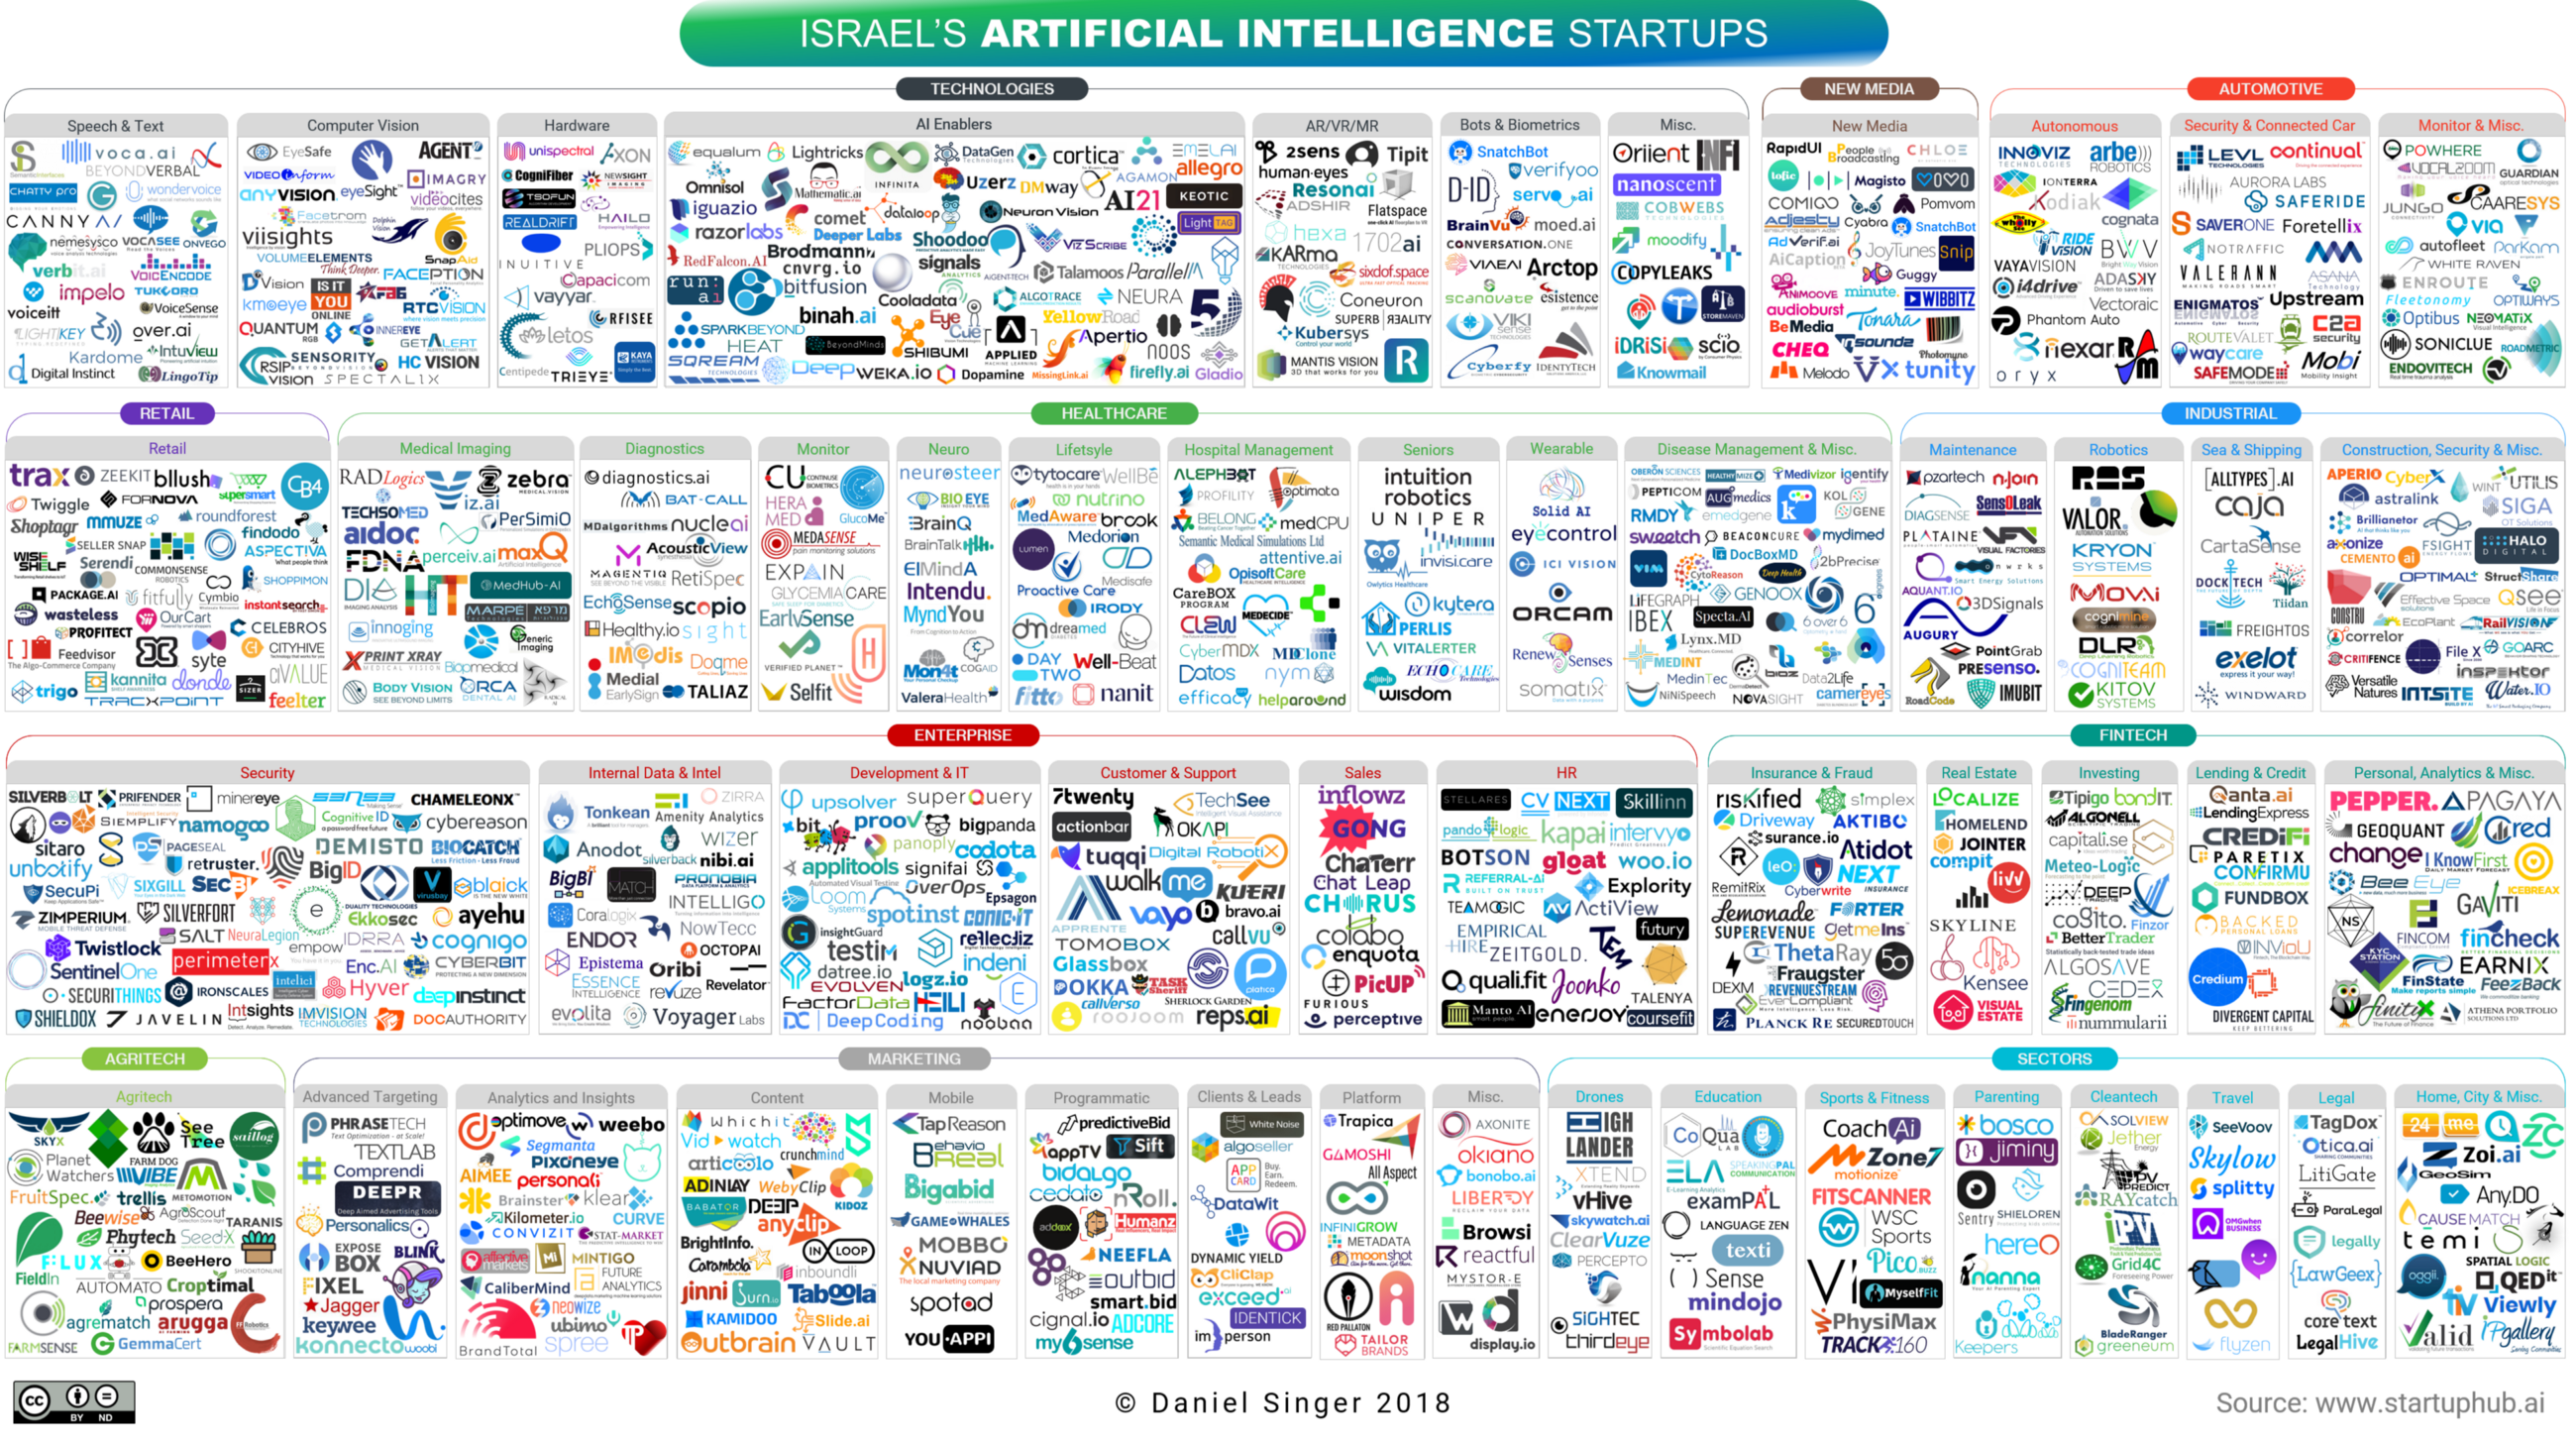 Israel AI Startup ecosystem